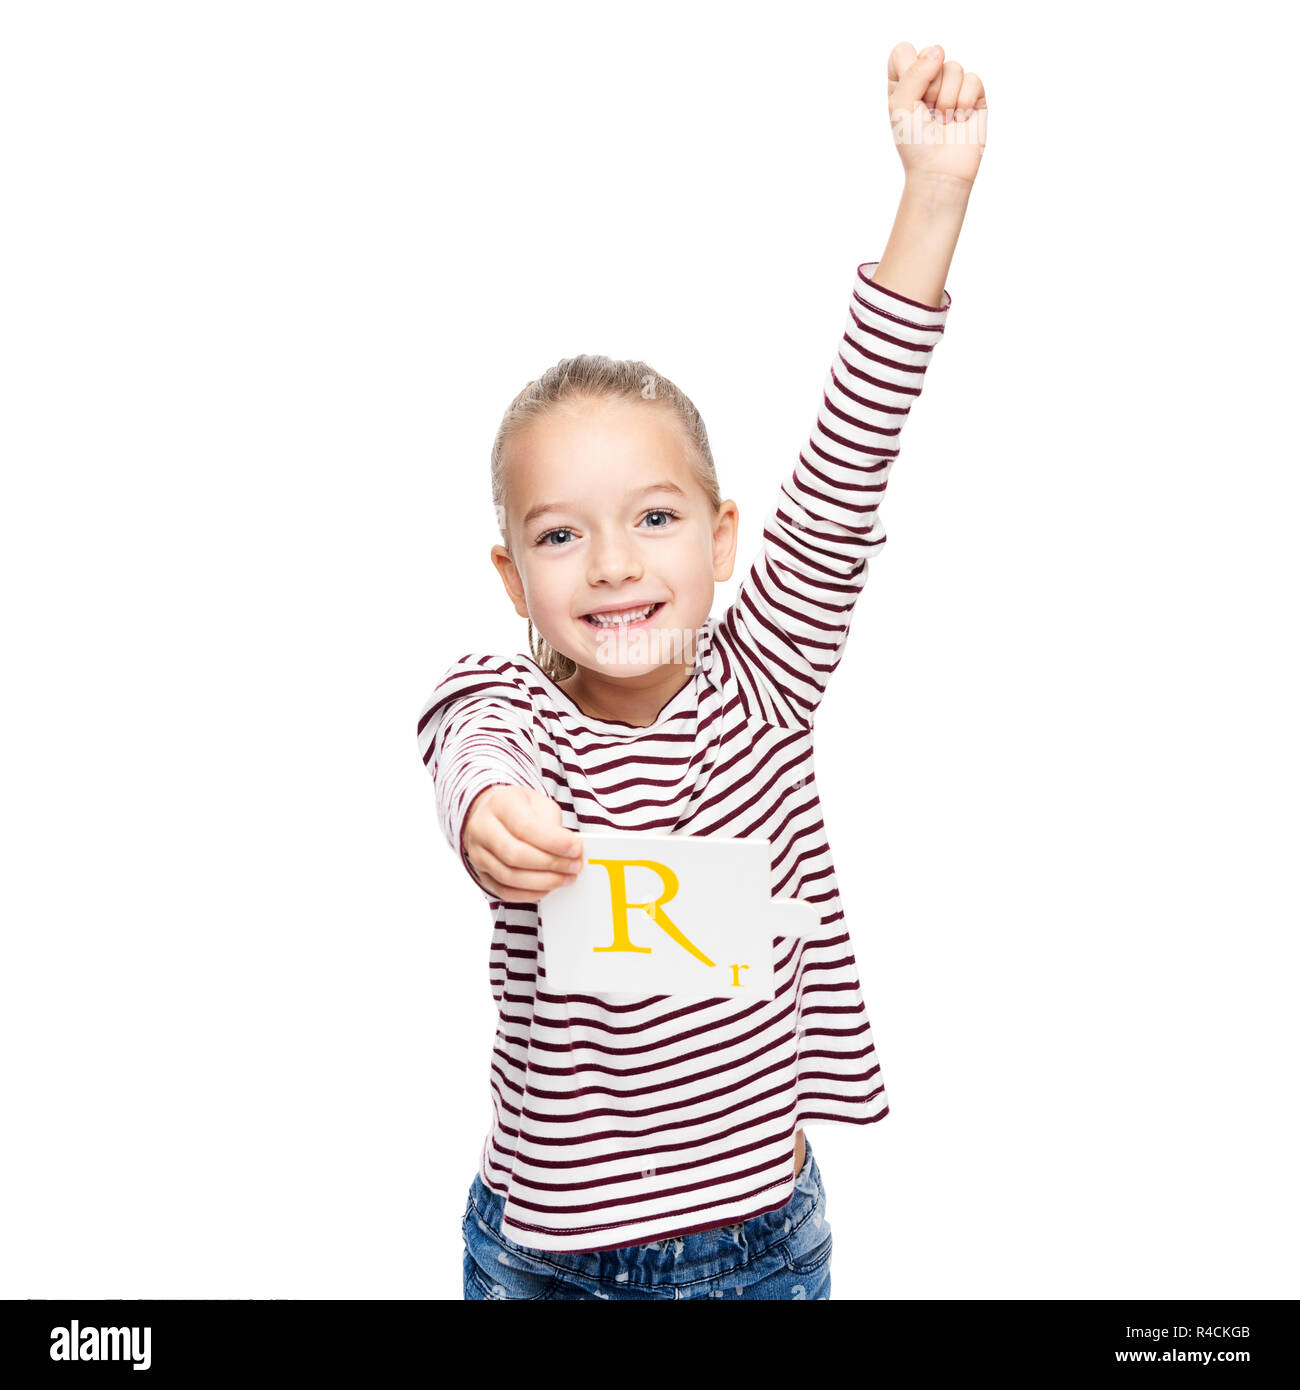 Cute young girl celebrating achievement at speech therapy. Child speech therapy concept isolated on white background. Hand in the air victory gesture. - Stock Image